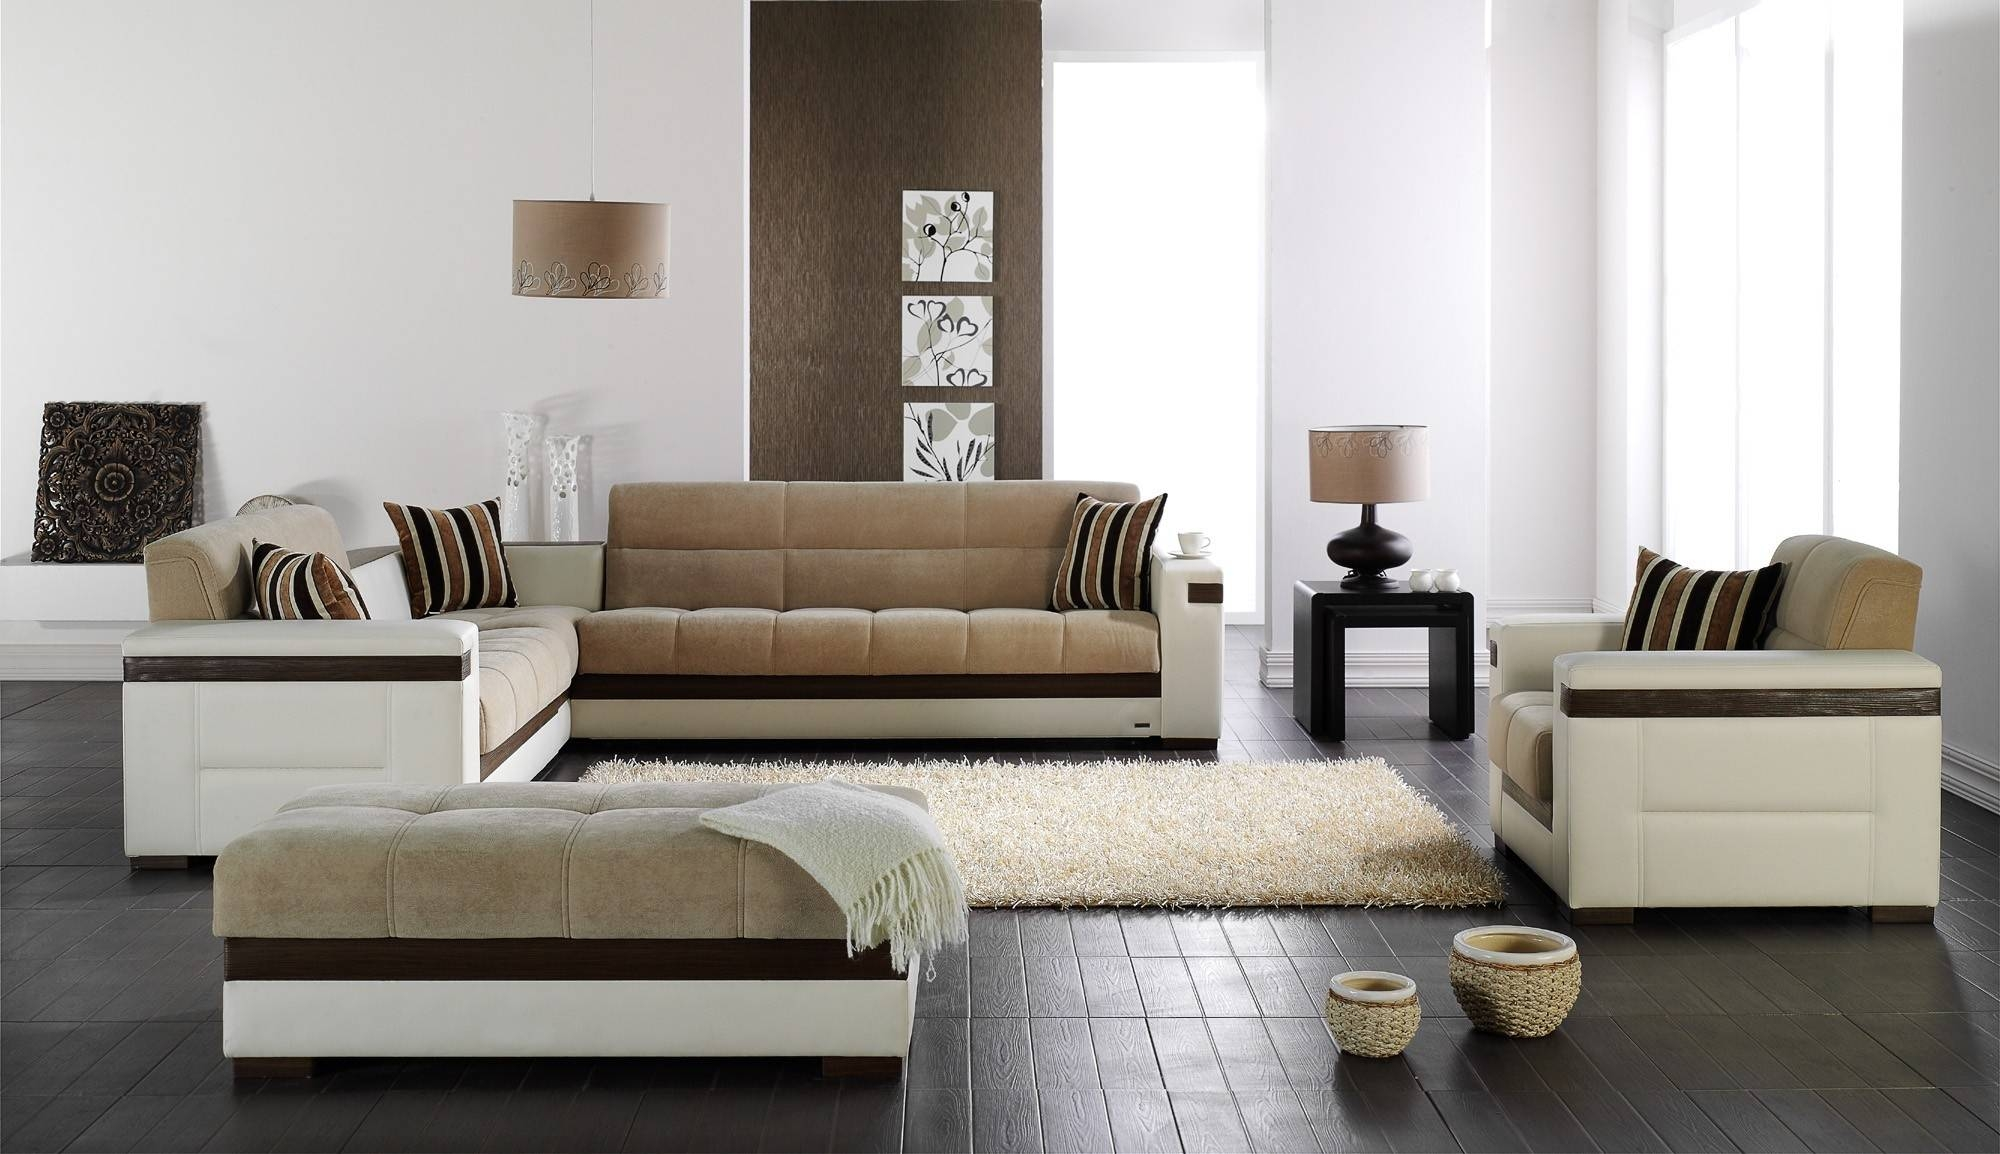 12 Inspirations Of European Style Sectional Sofas throughout European Style Sectional Sofas (Image 5 of 30)